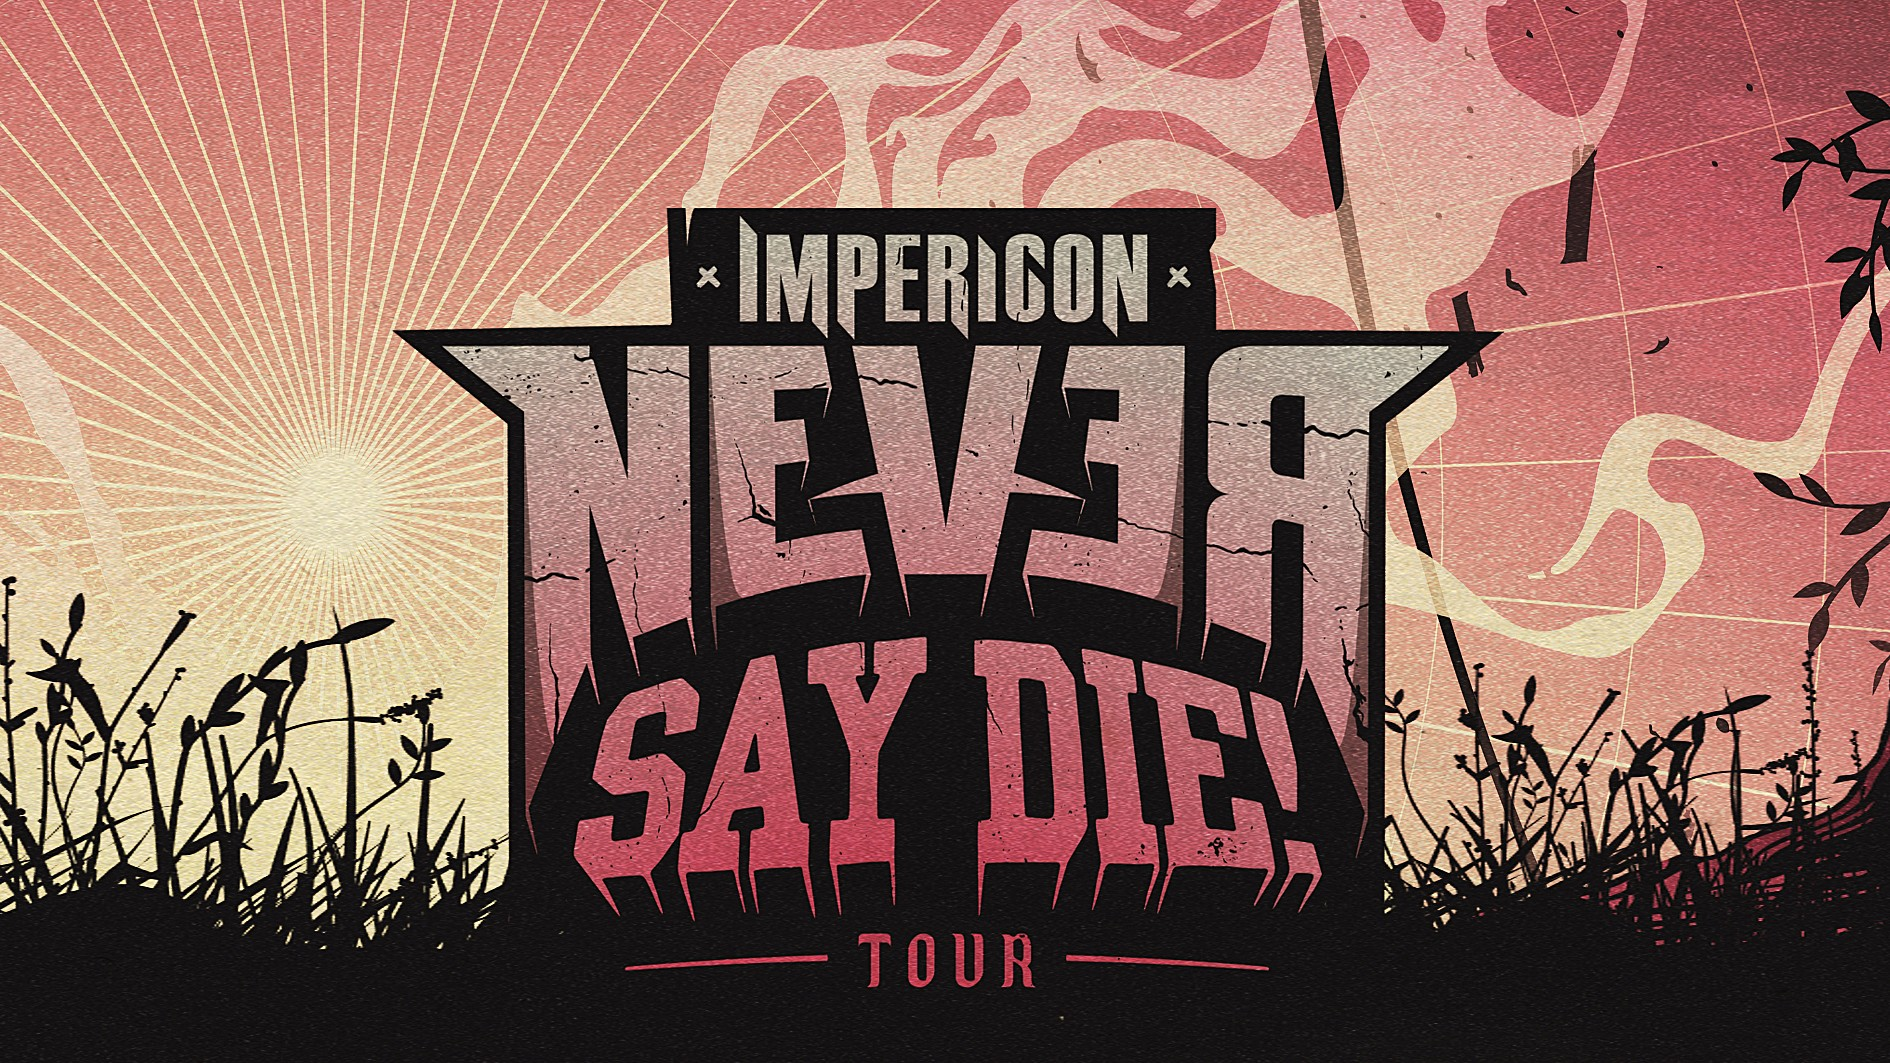 Impericon Never Say Die! Tour 2021